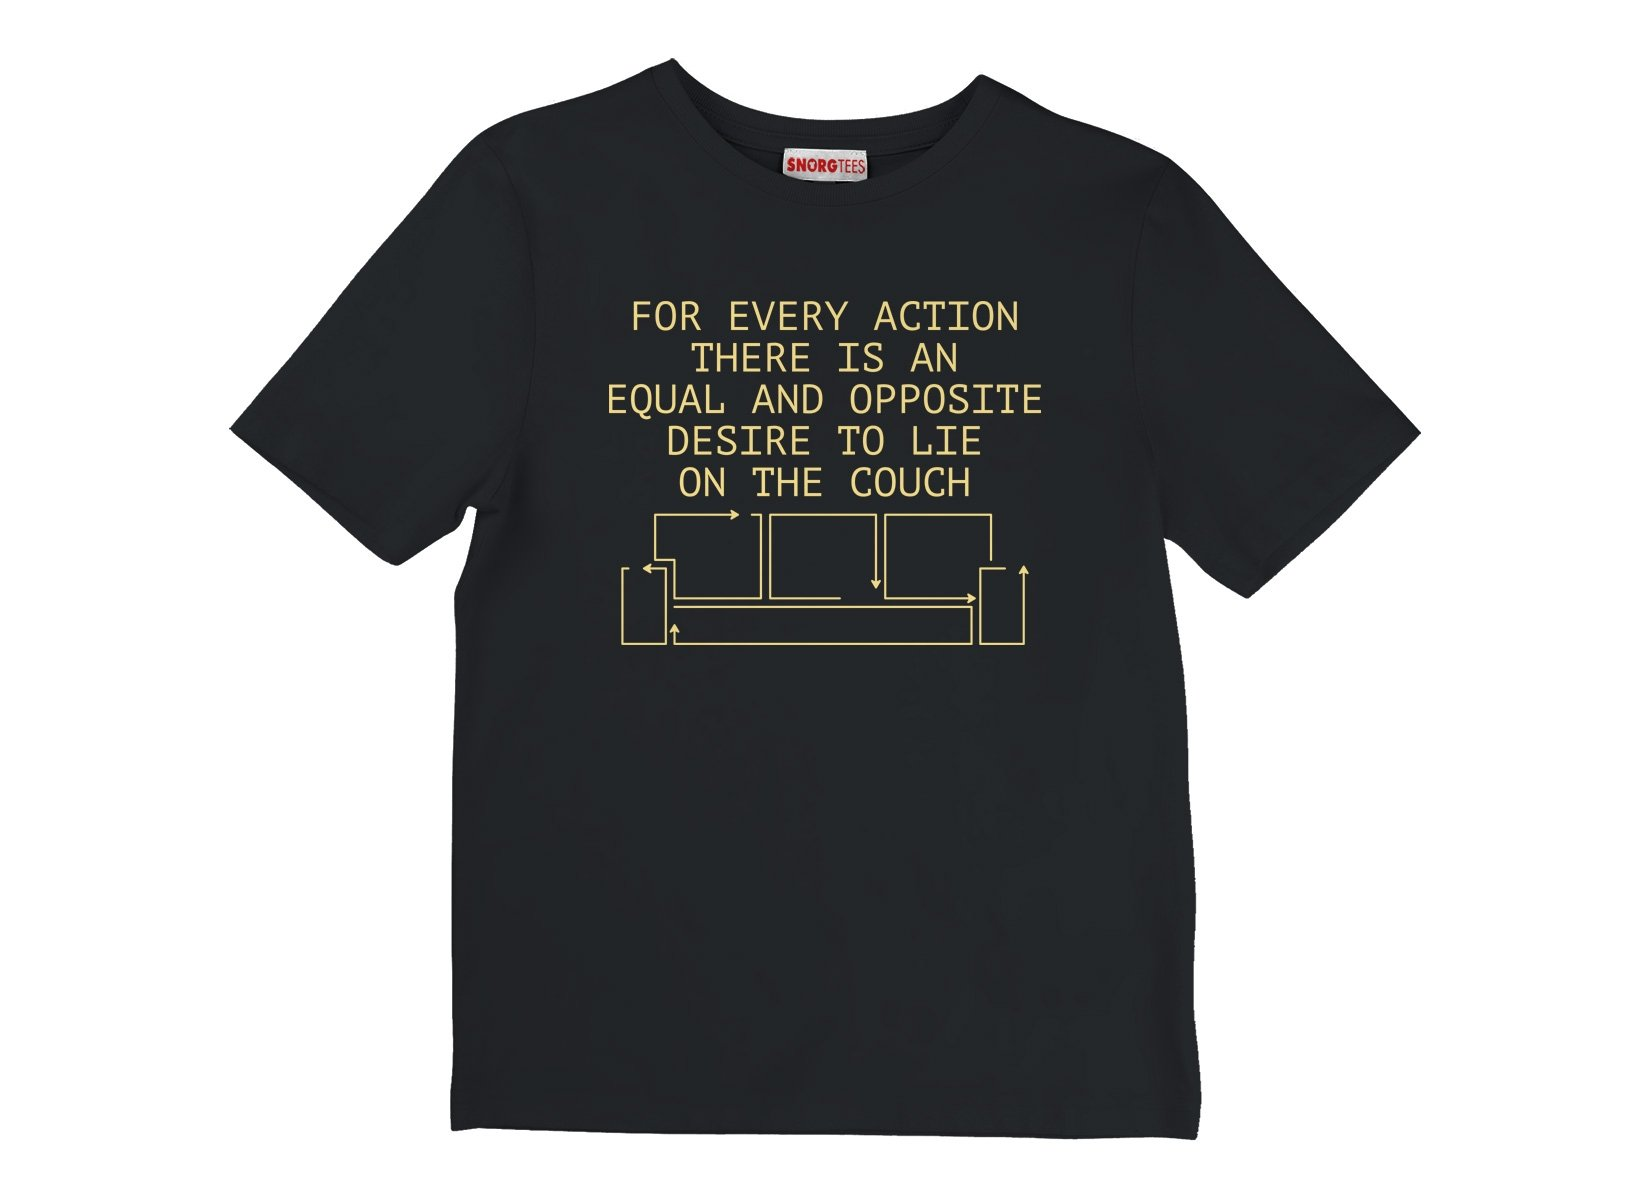 For Every Action There Is An Equal And Opposite Desire To Lie On The Couch on Kids T-Shirt